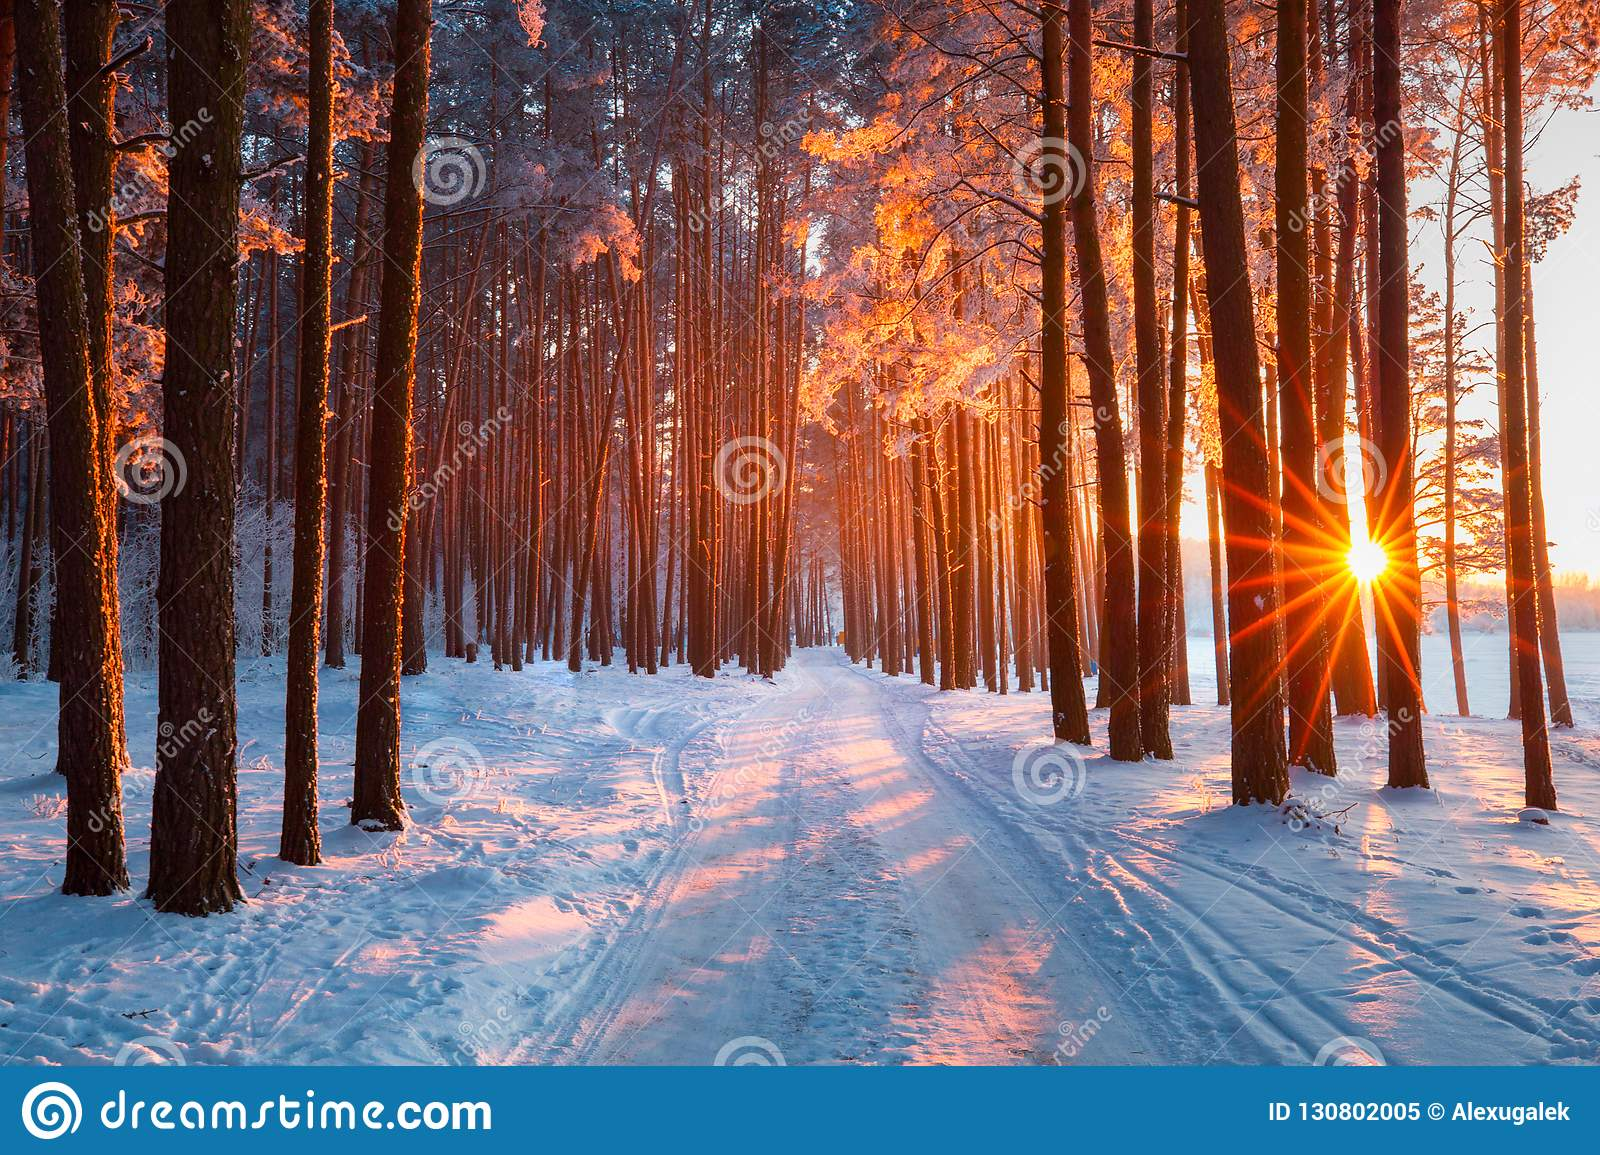 Snow path in winter forest. Evening sun shines through trees. Sun illuminates trees with frost.